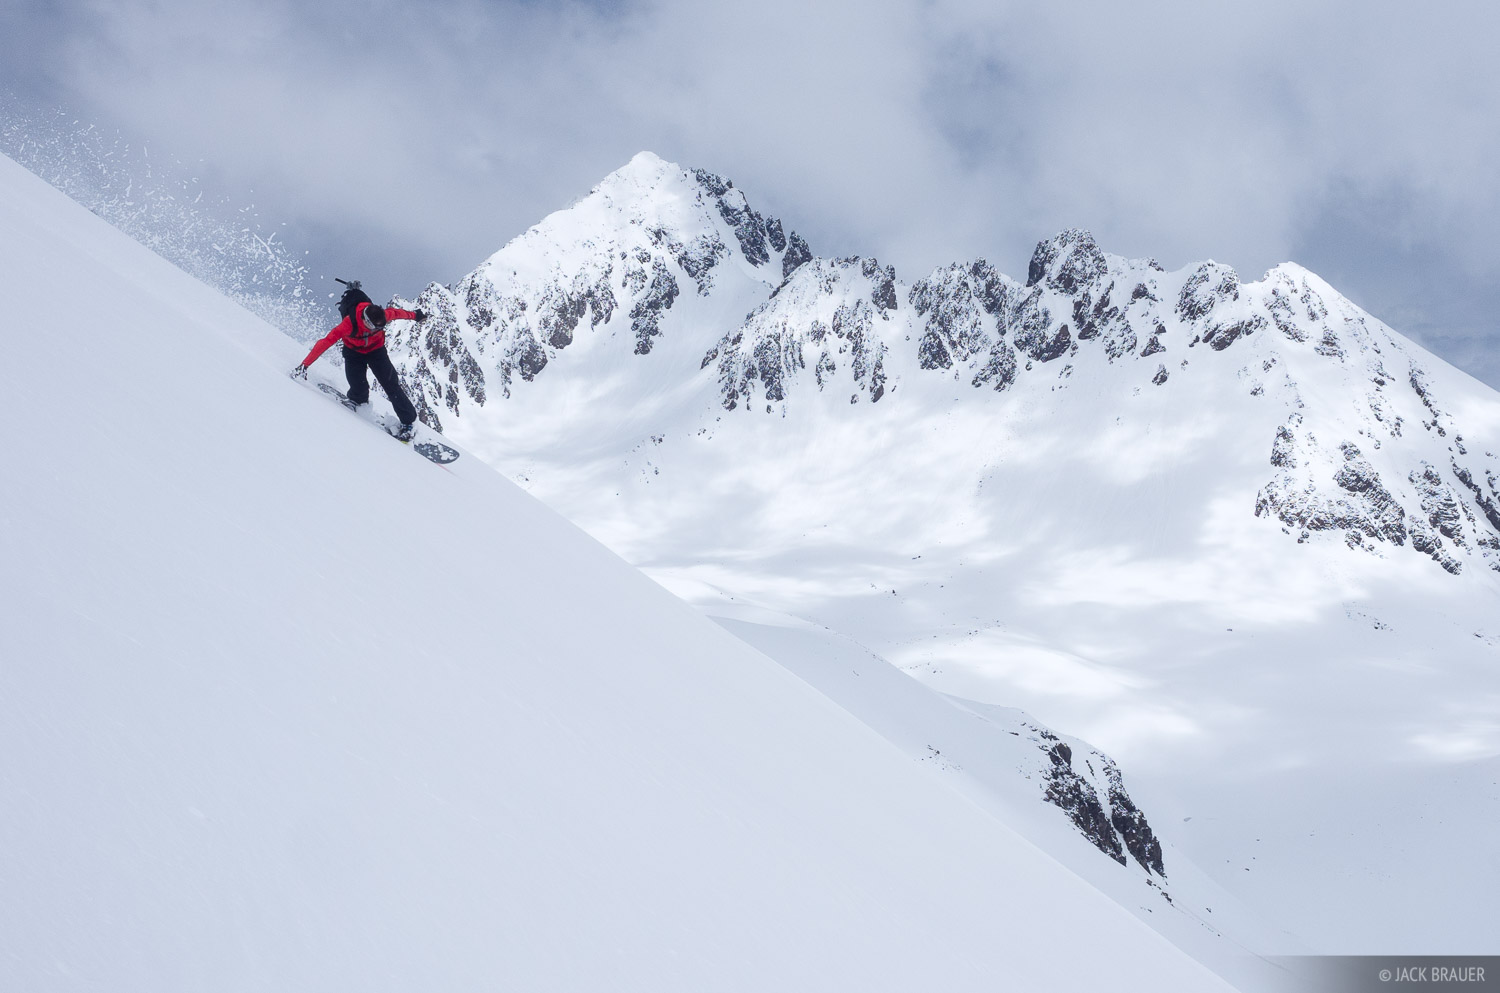 Snowboarder: Mikel Goicoechea. Mt. Sneffels in the background. May.